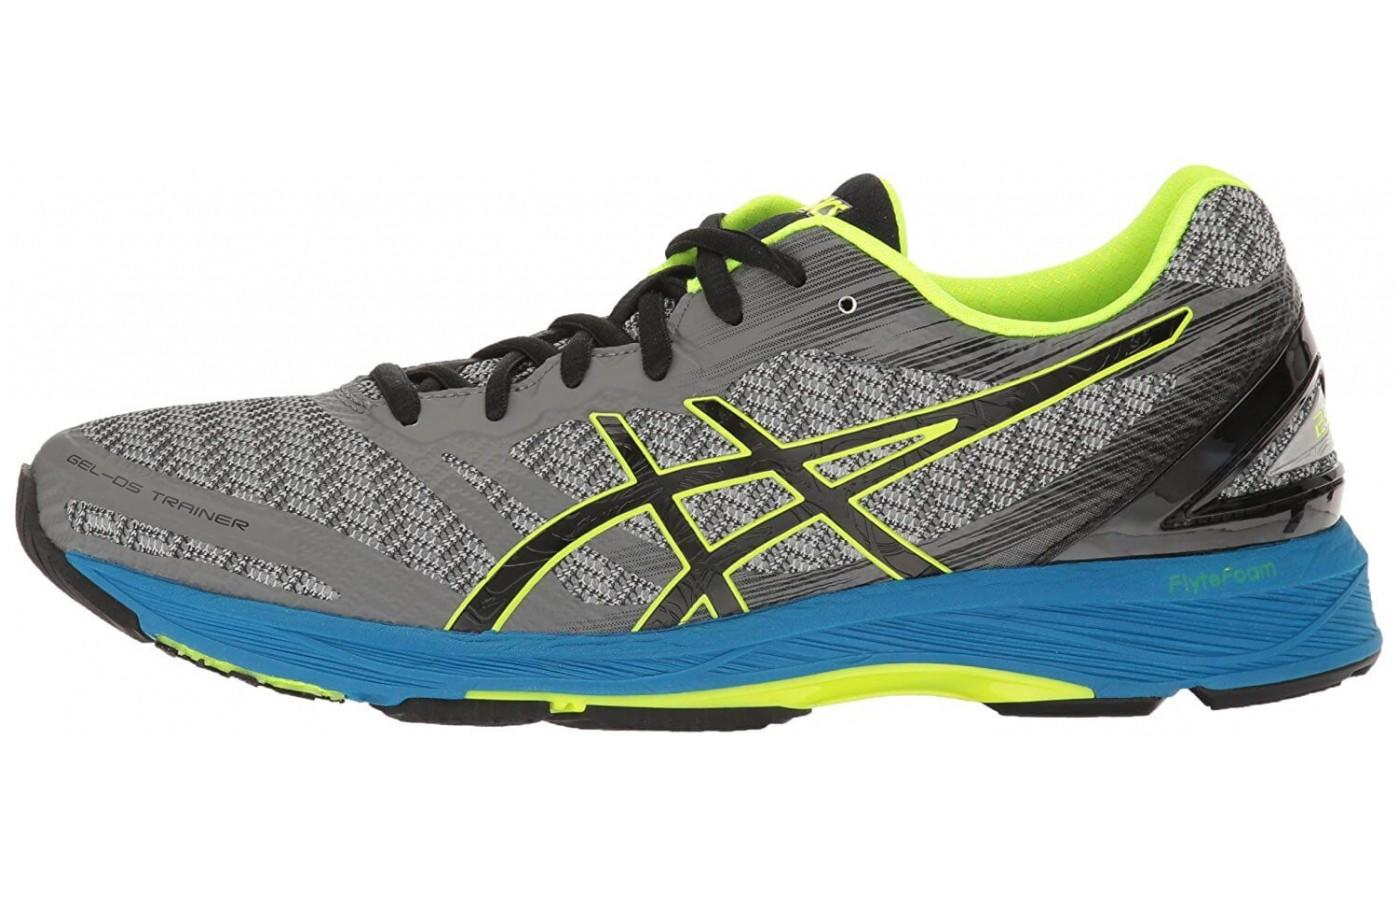 The Asics Gel DS Trainer 22 works to enhance the natural gait